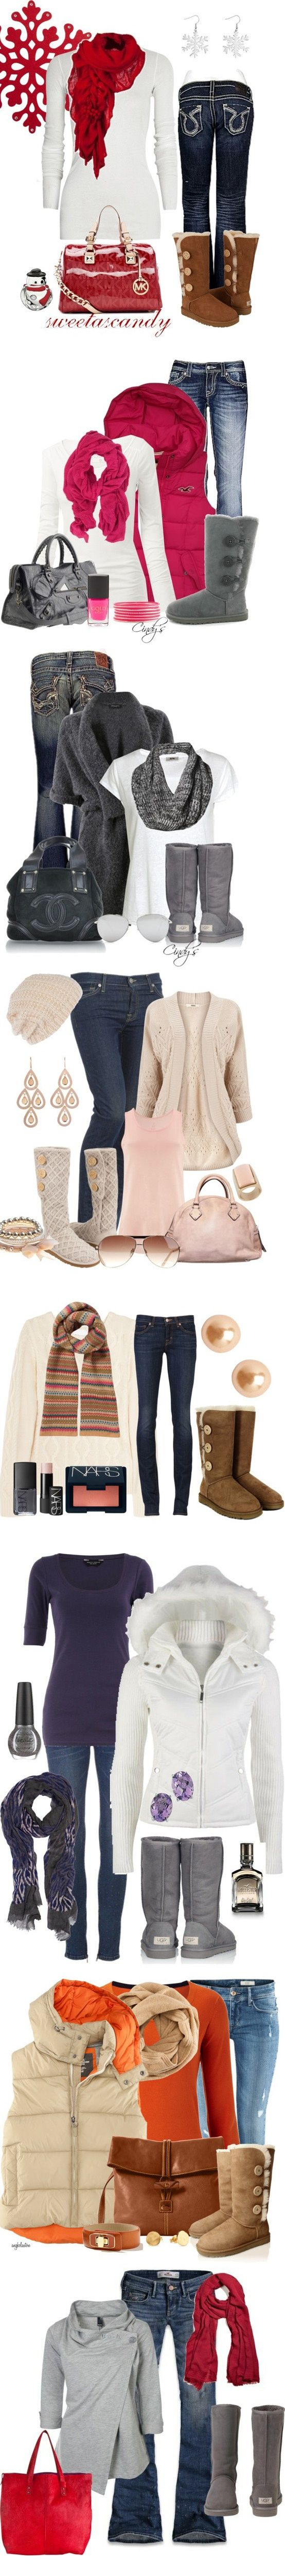 Ugg love <3 these all look like something if wear.